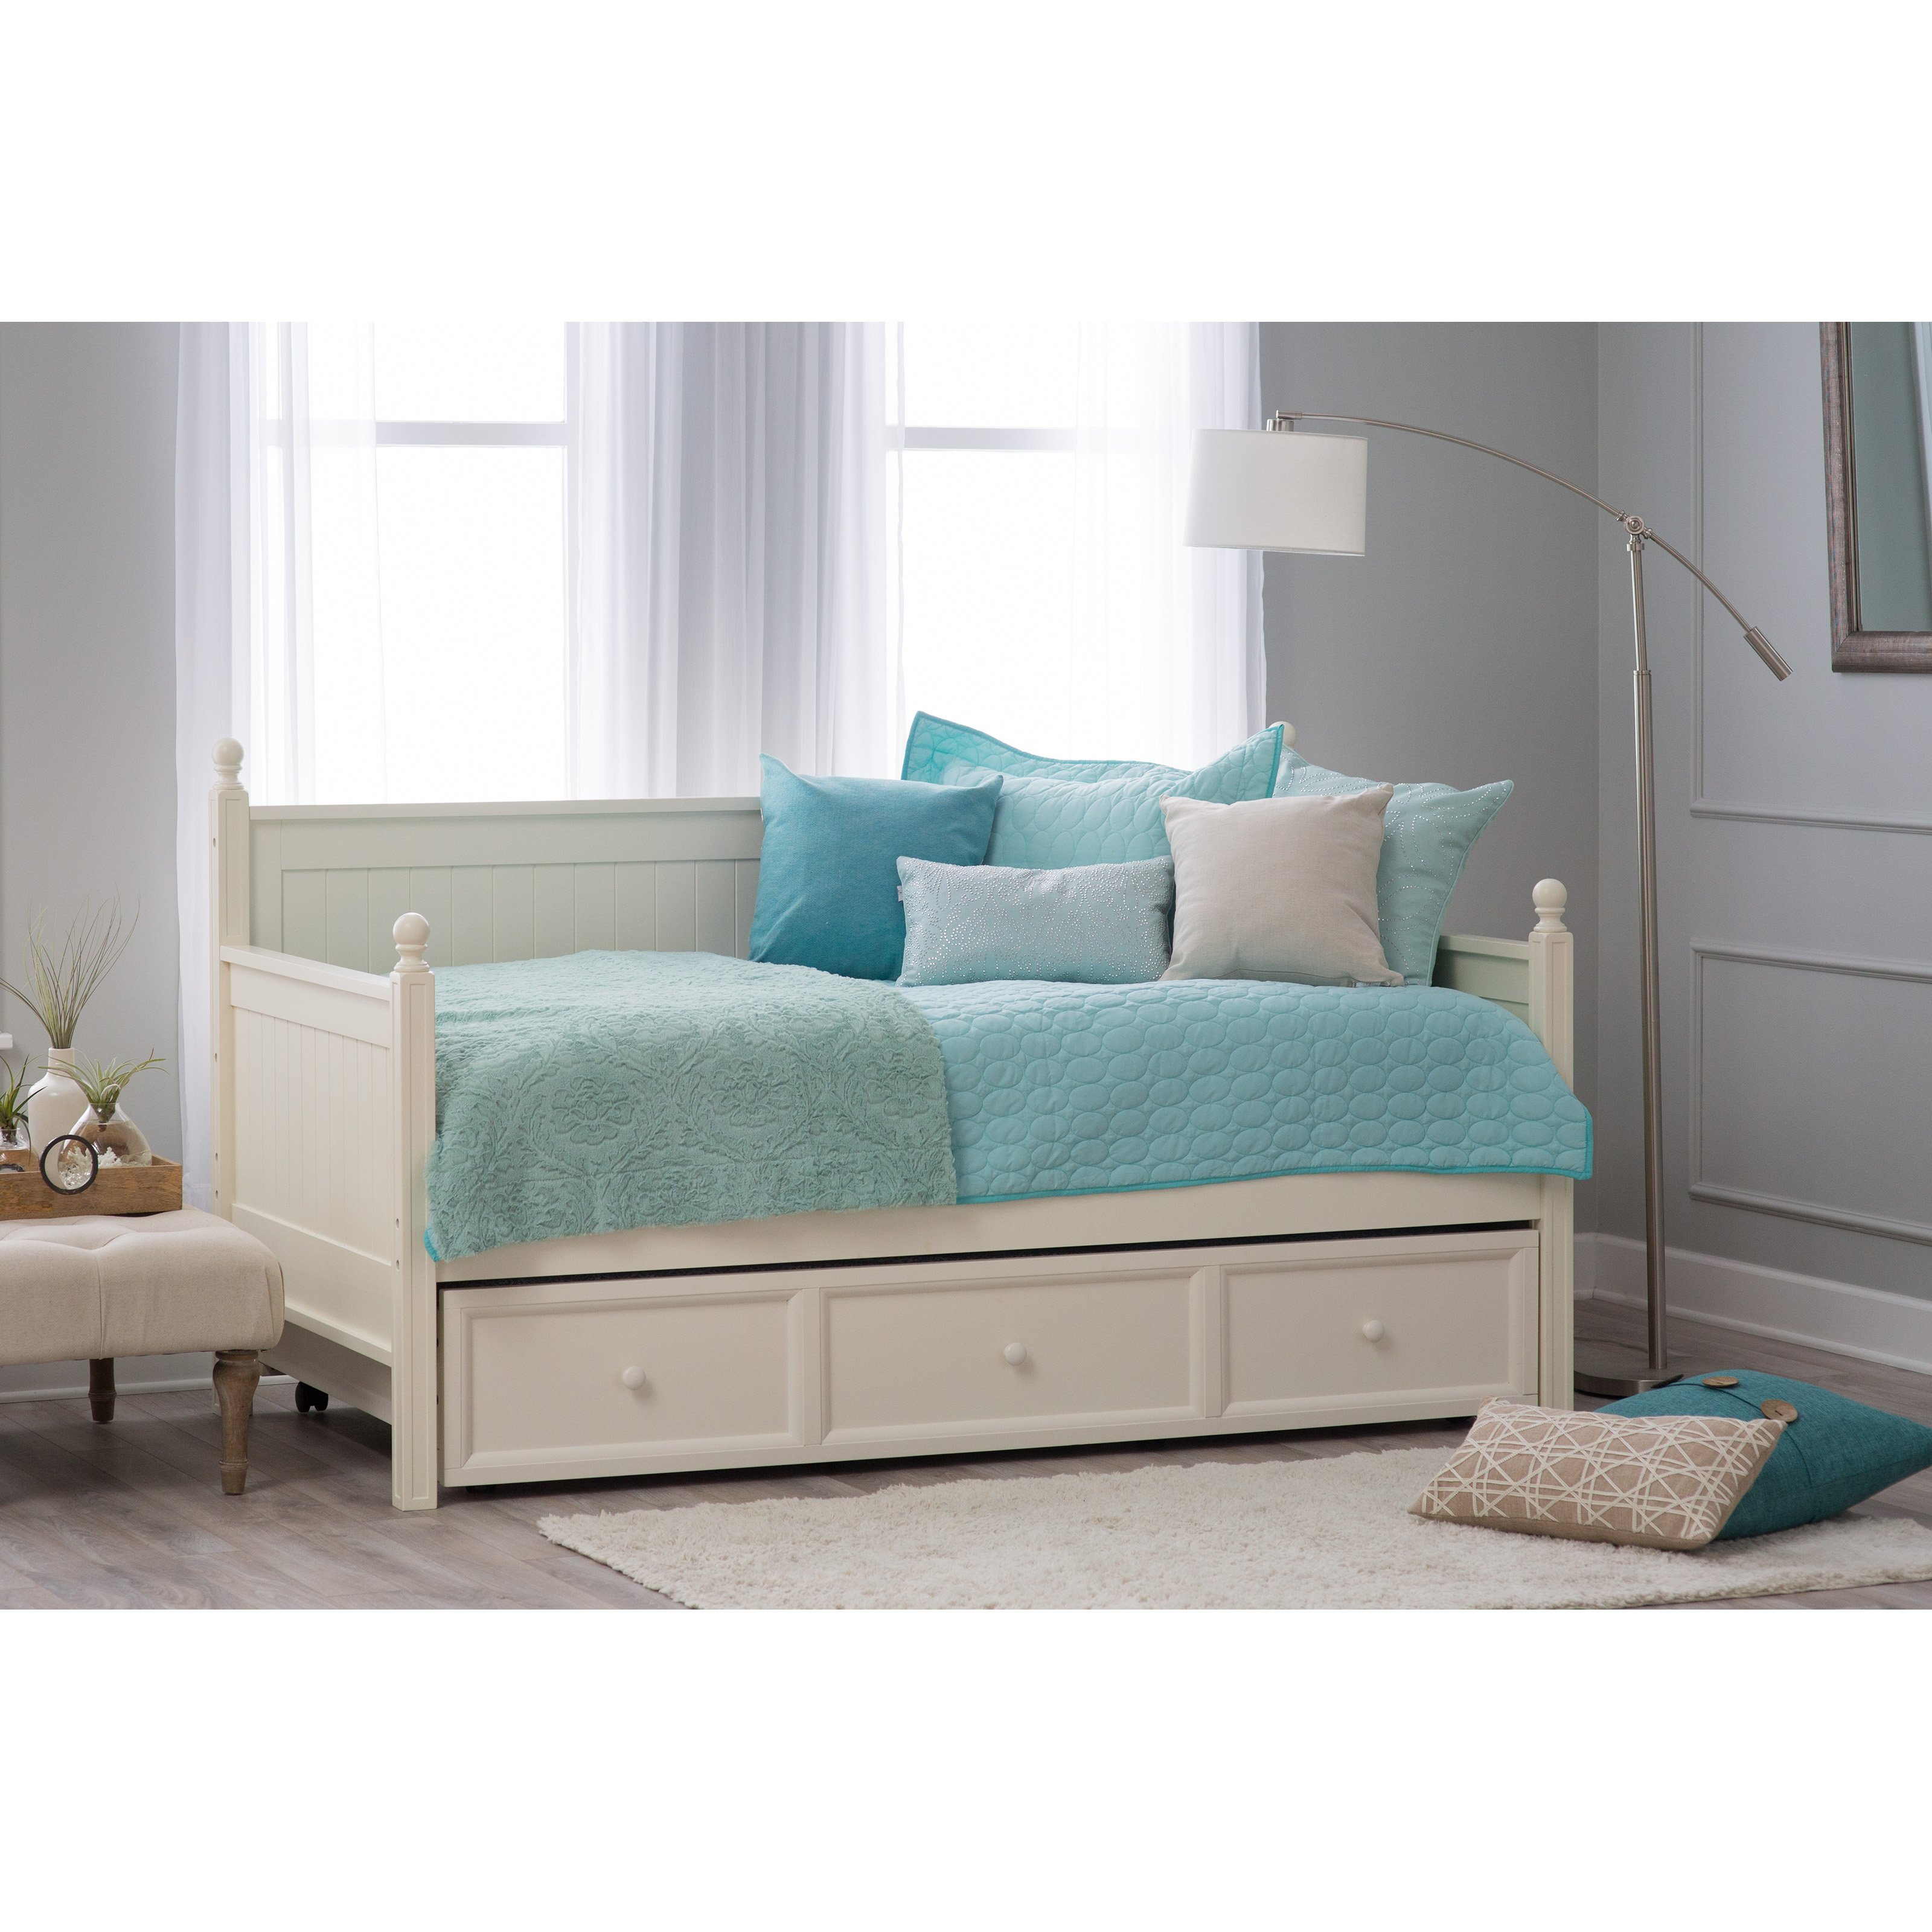 Cheap day beds cheap daybeds with trundle and modern Daybeds with storage